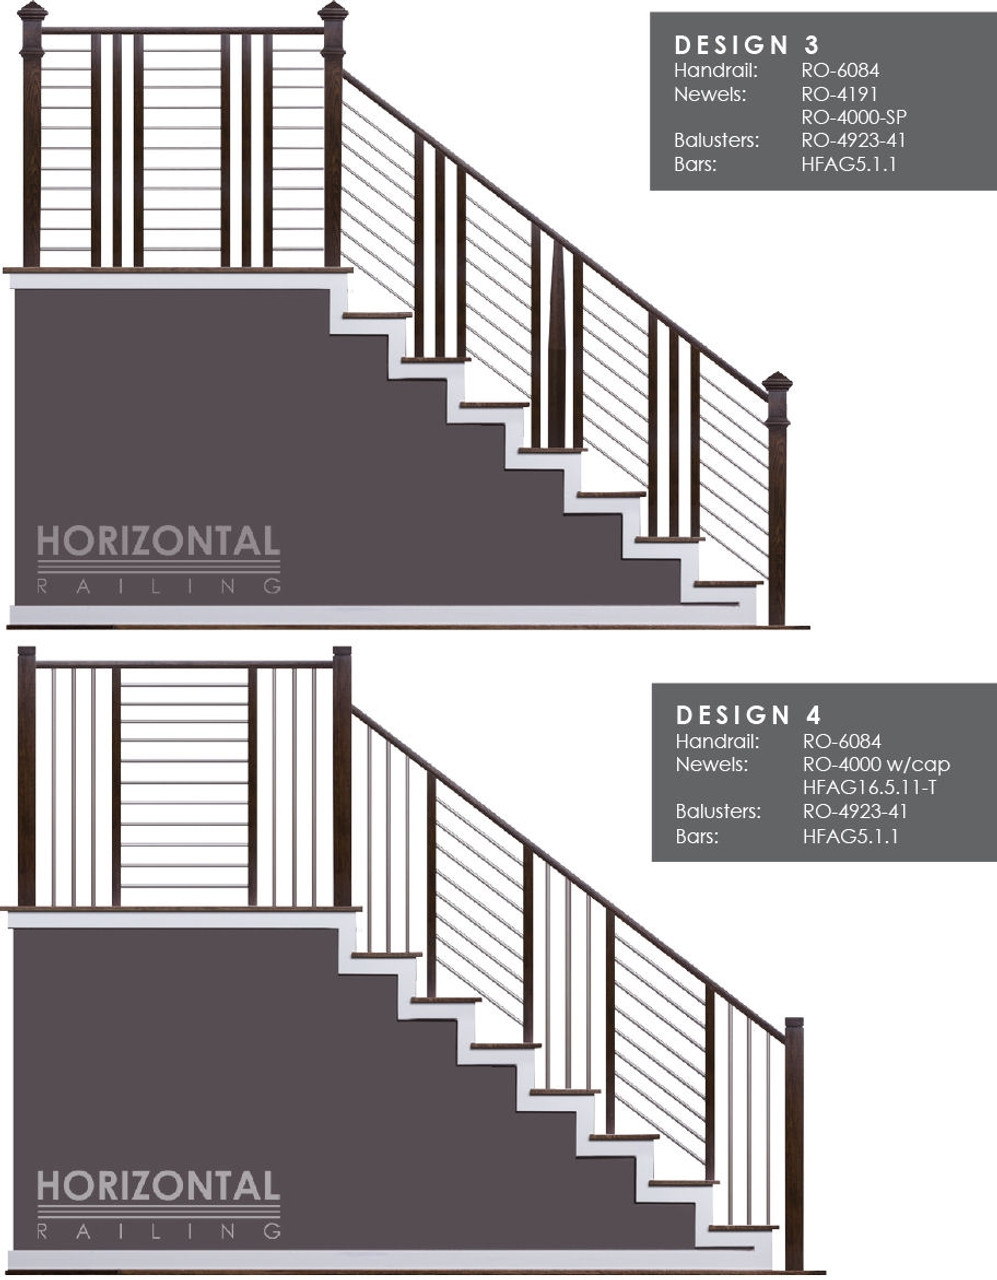 Hf5 1 1 Horizontal Railings And Bars Westfire Stair Parts   Tubular Design For Stairs   Stainless Steel   Fully Covered Balcony Grill   Fabrication   Simple   Industrial